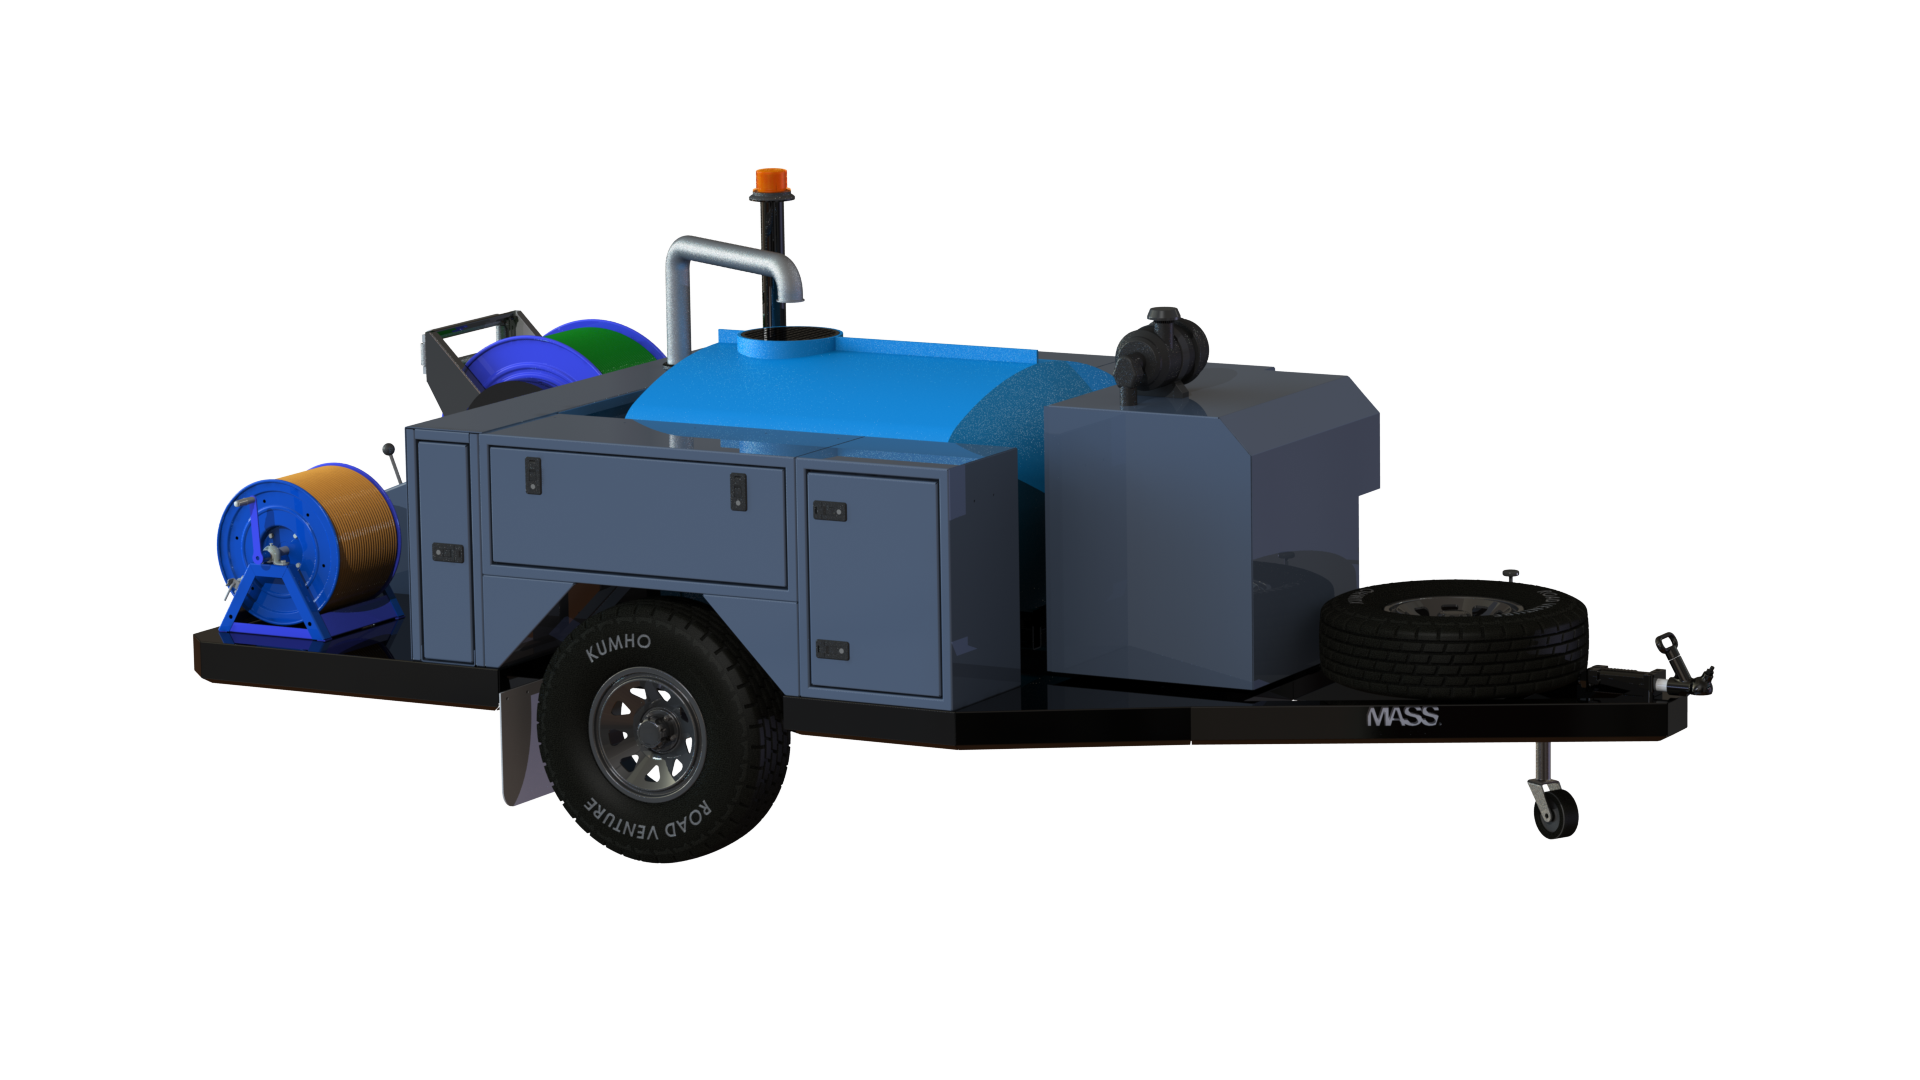 Mass Jetter Isometric View - Side